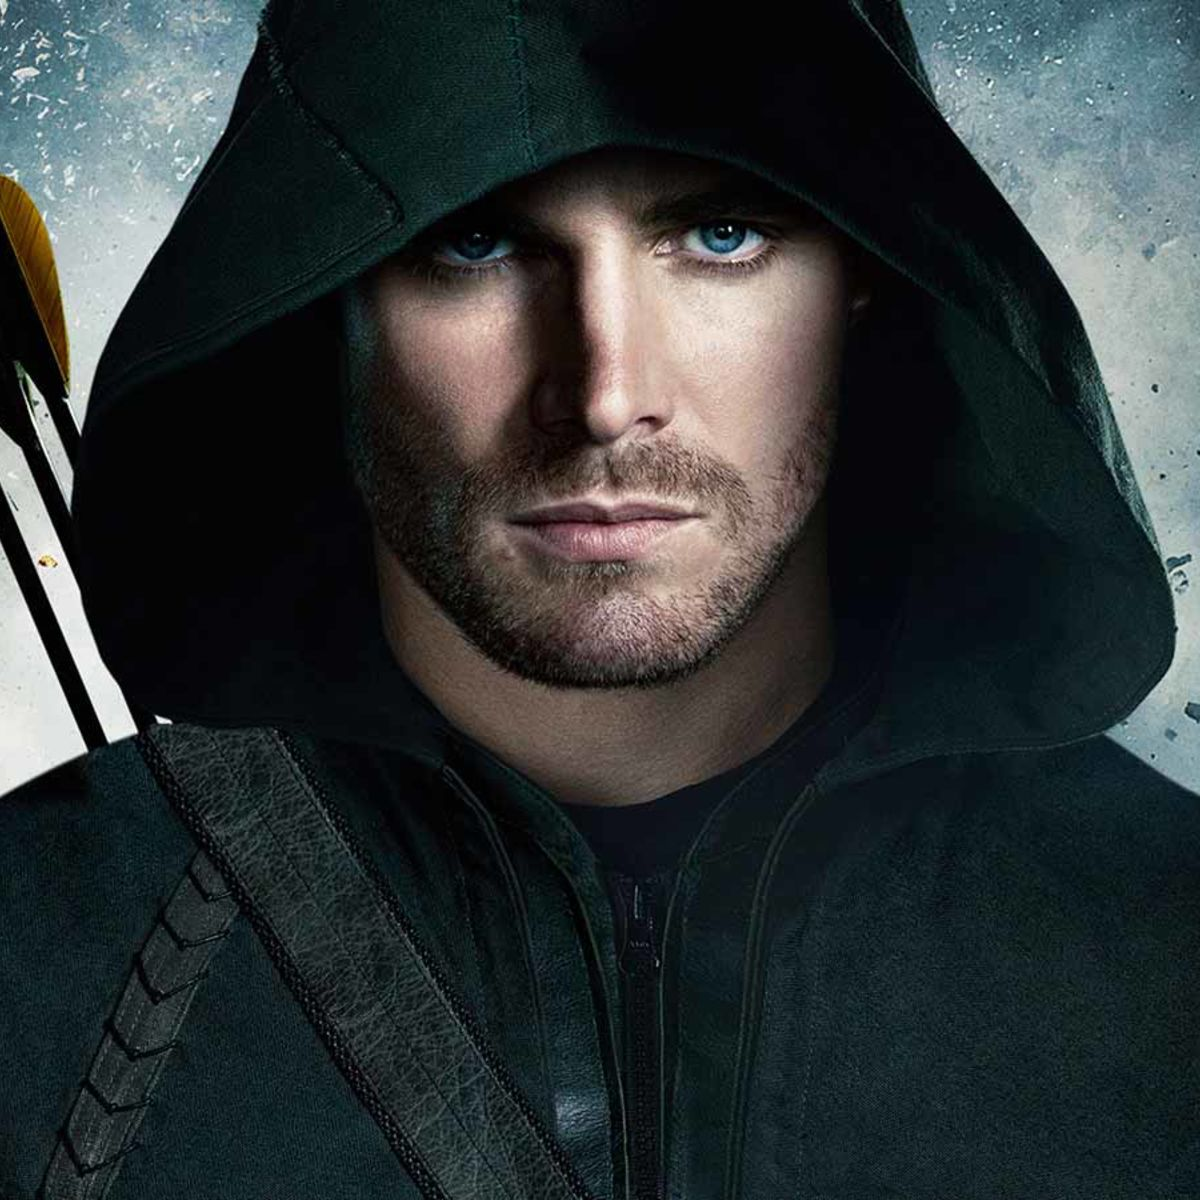 TV_Gallery_Arrow01_53712d787bb741.46013658.jpg